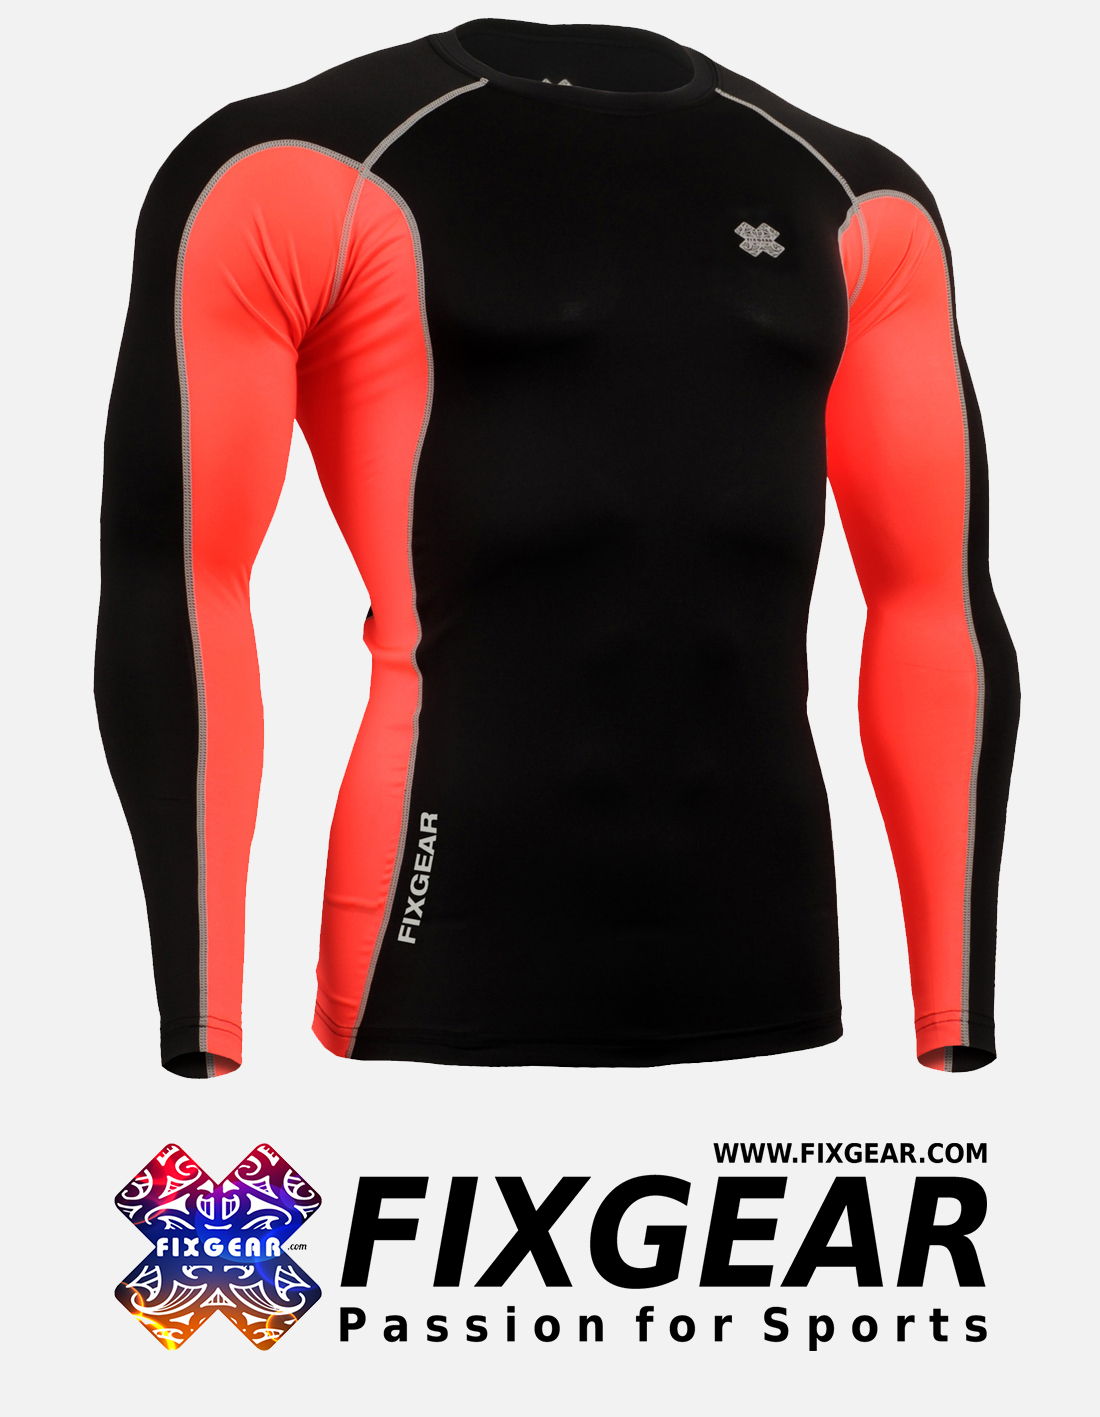 FIXGEAR FCT-BPL Skin-tight Compression Base Layer Shirt